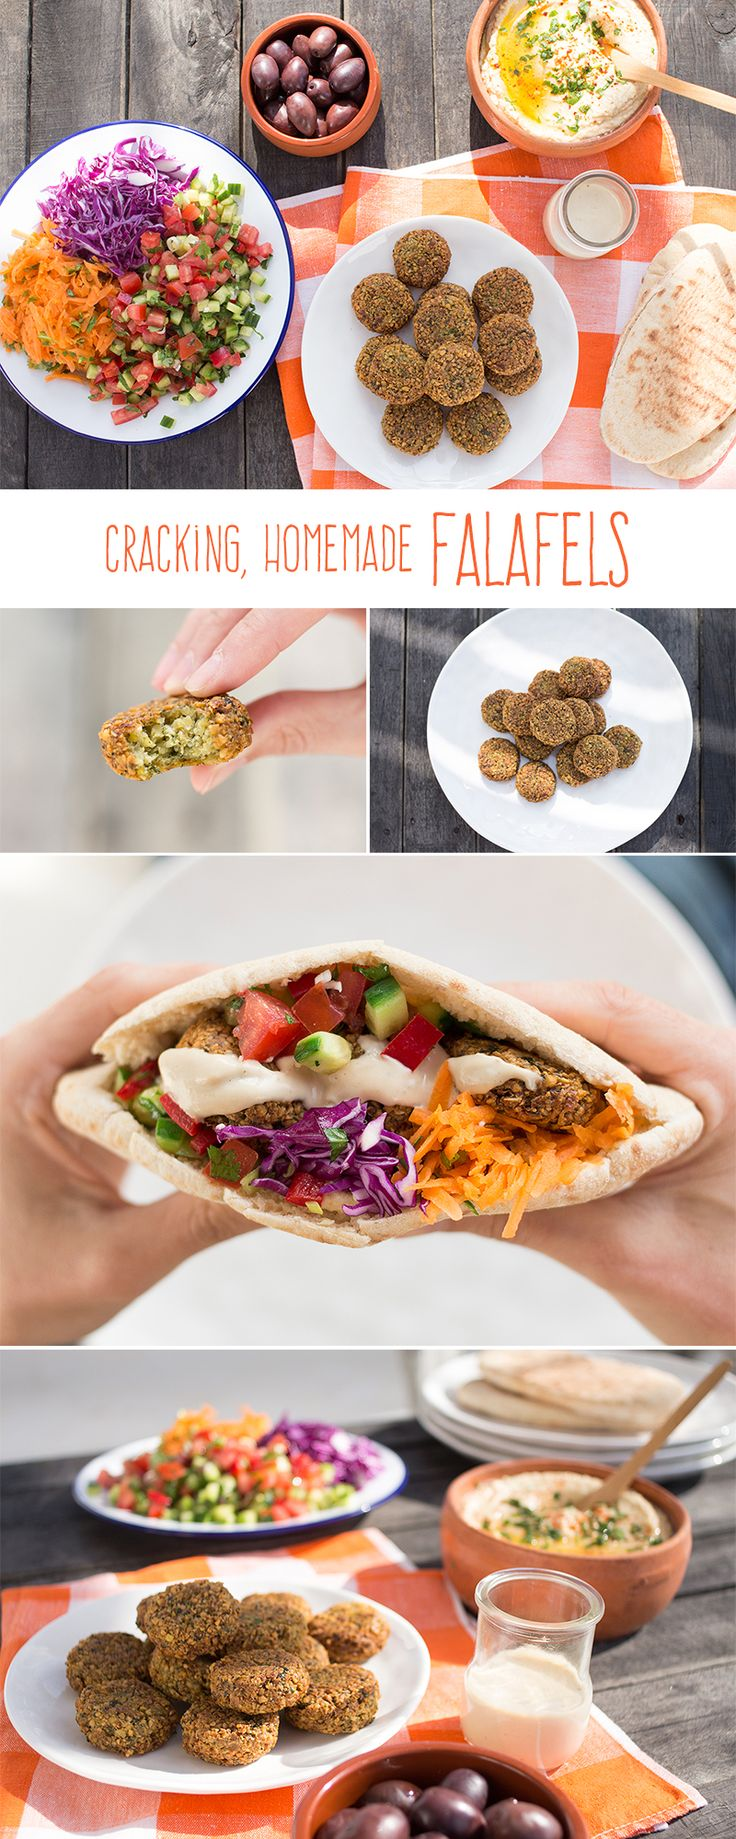 Have you tried making falafels at home? Try it, they are easy and taste fantastic. They are crispy and golden on the outside and soft on the inside. Best enjoyed with heaps of salad, hummus and tahini sauce. ♡